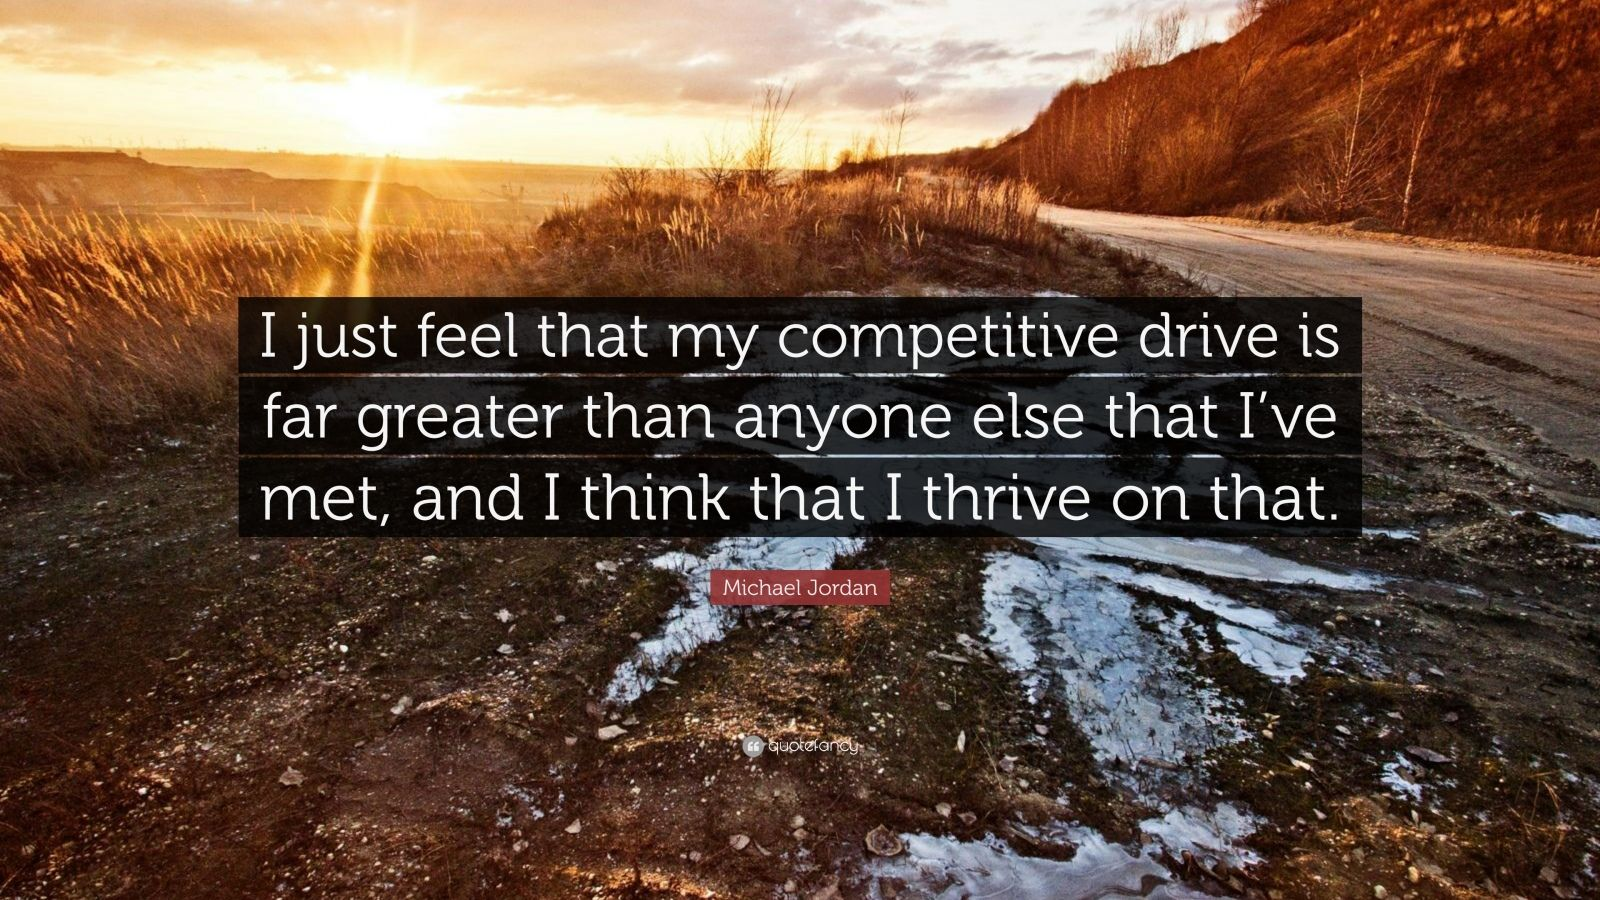 """Michael Jordan Quote: """"I just feel that my competitive drive is far greater than anyone else that I've met, and I think that I thrive on that."""""""